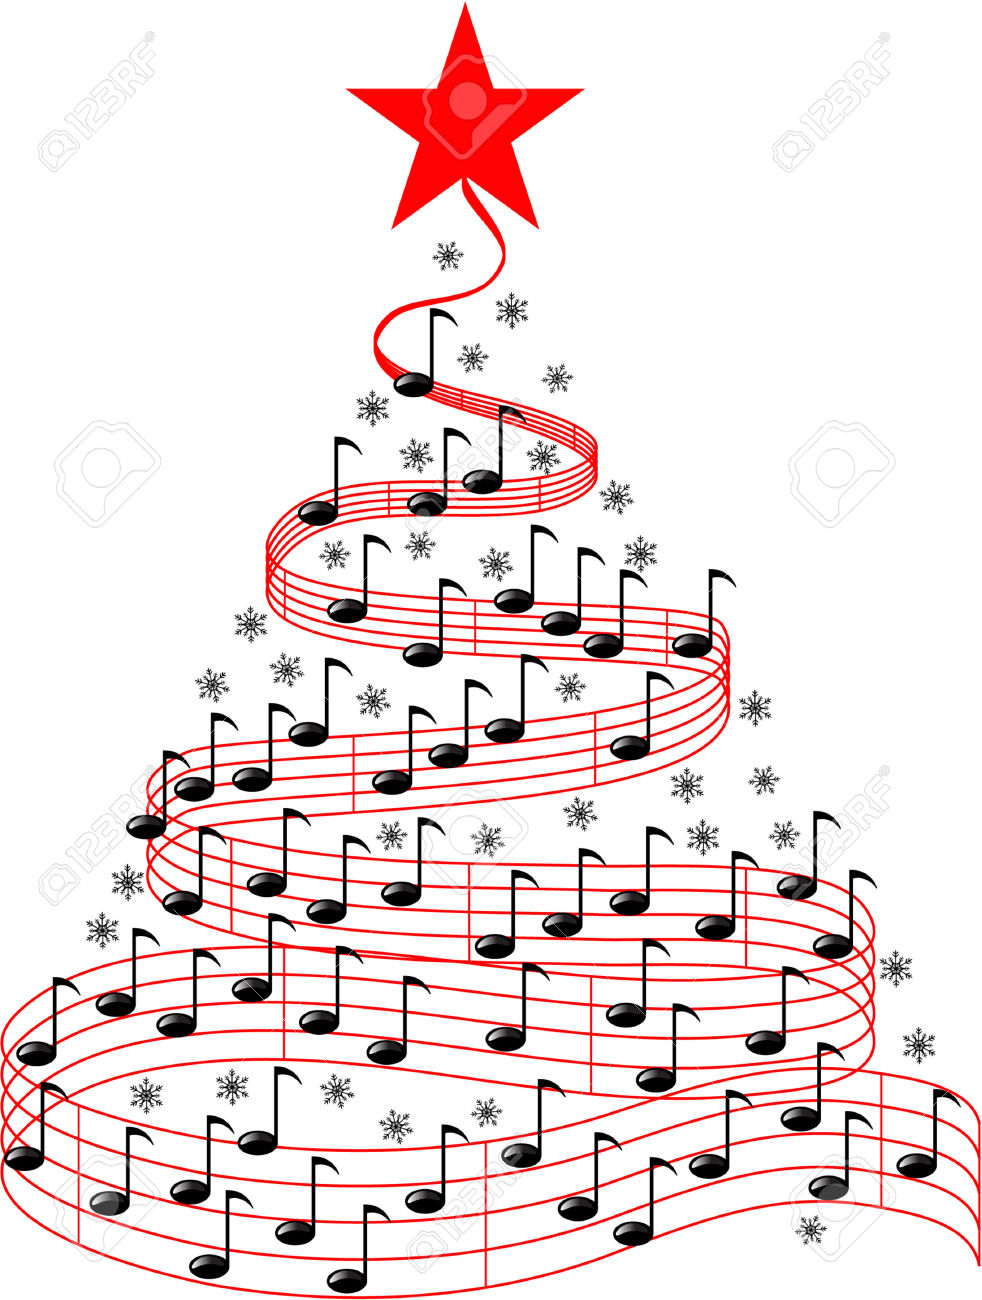 355 Christmas Music free clipart.